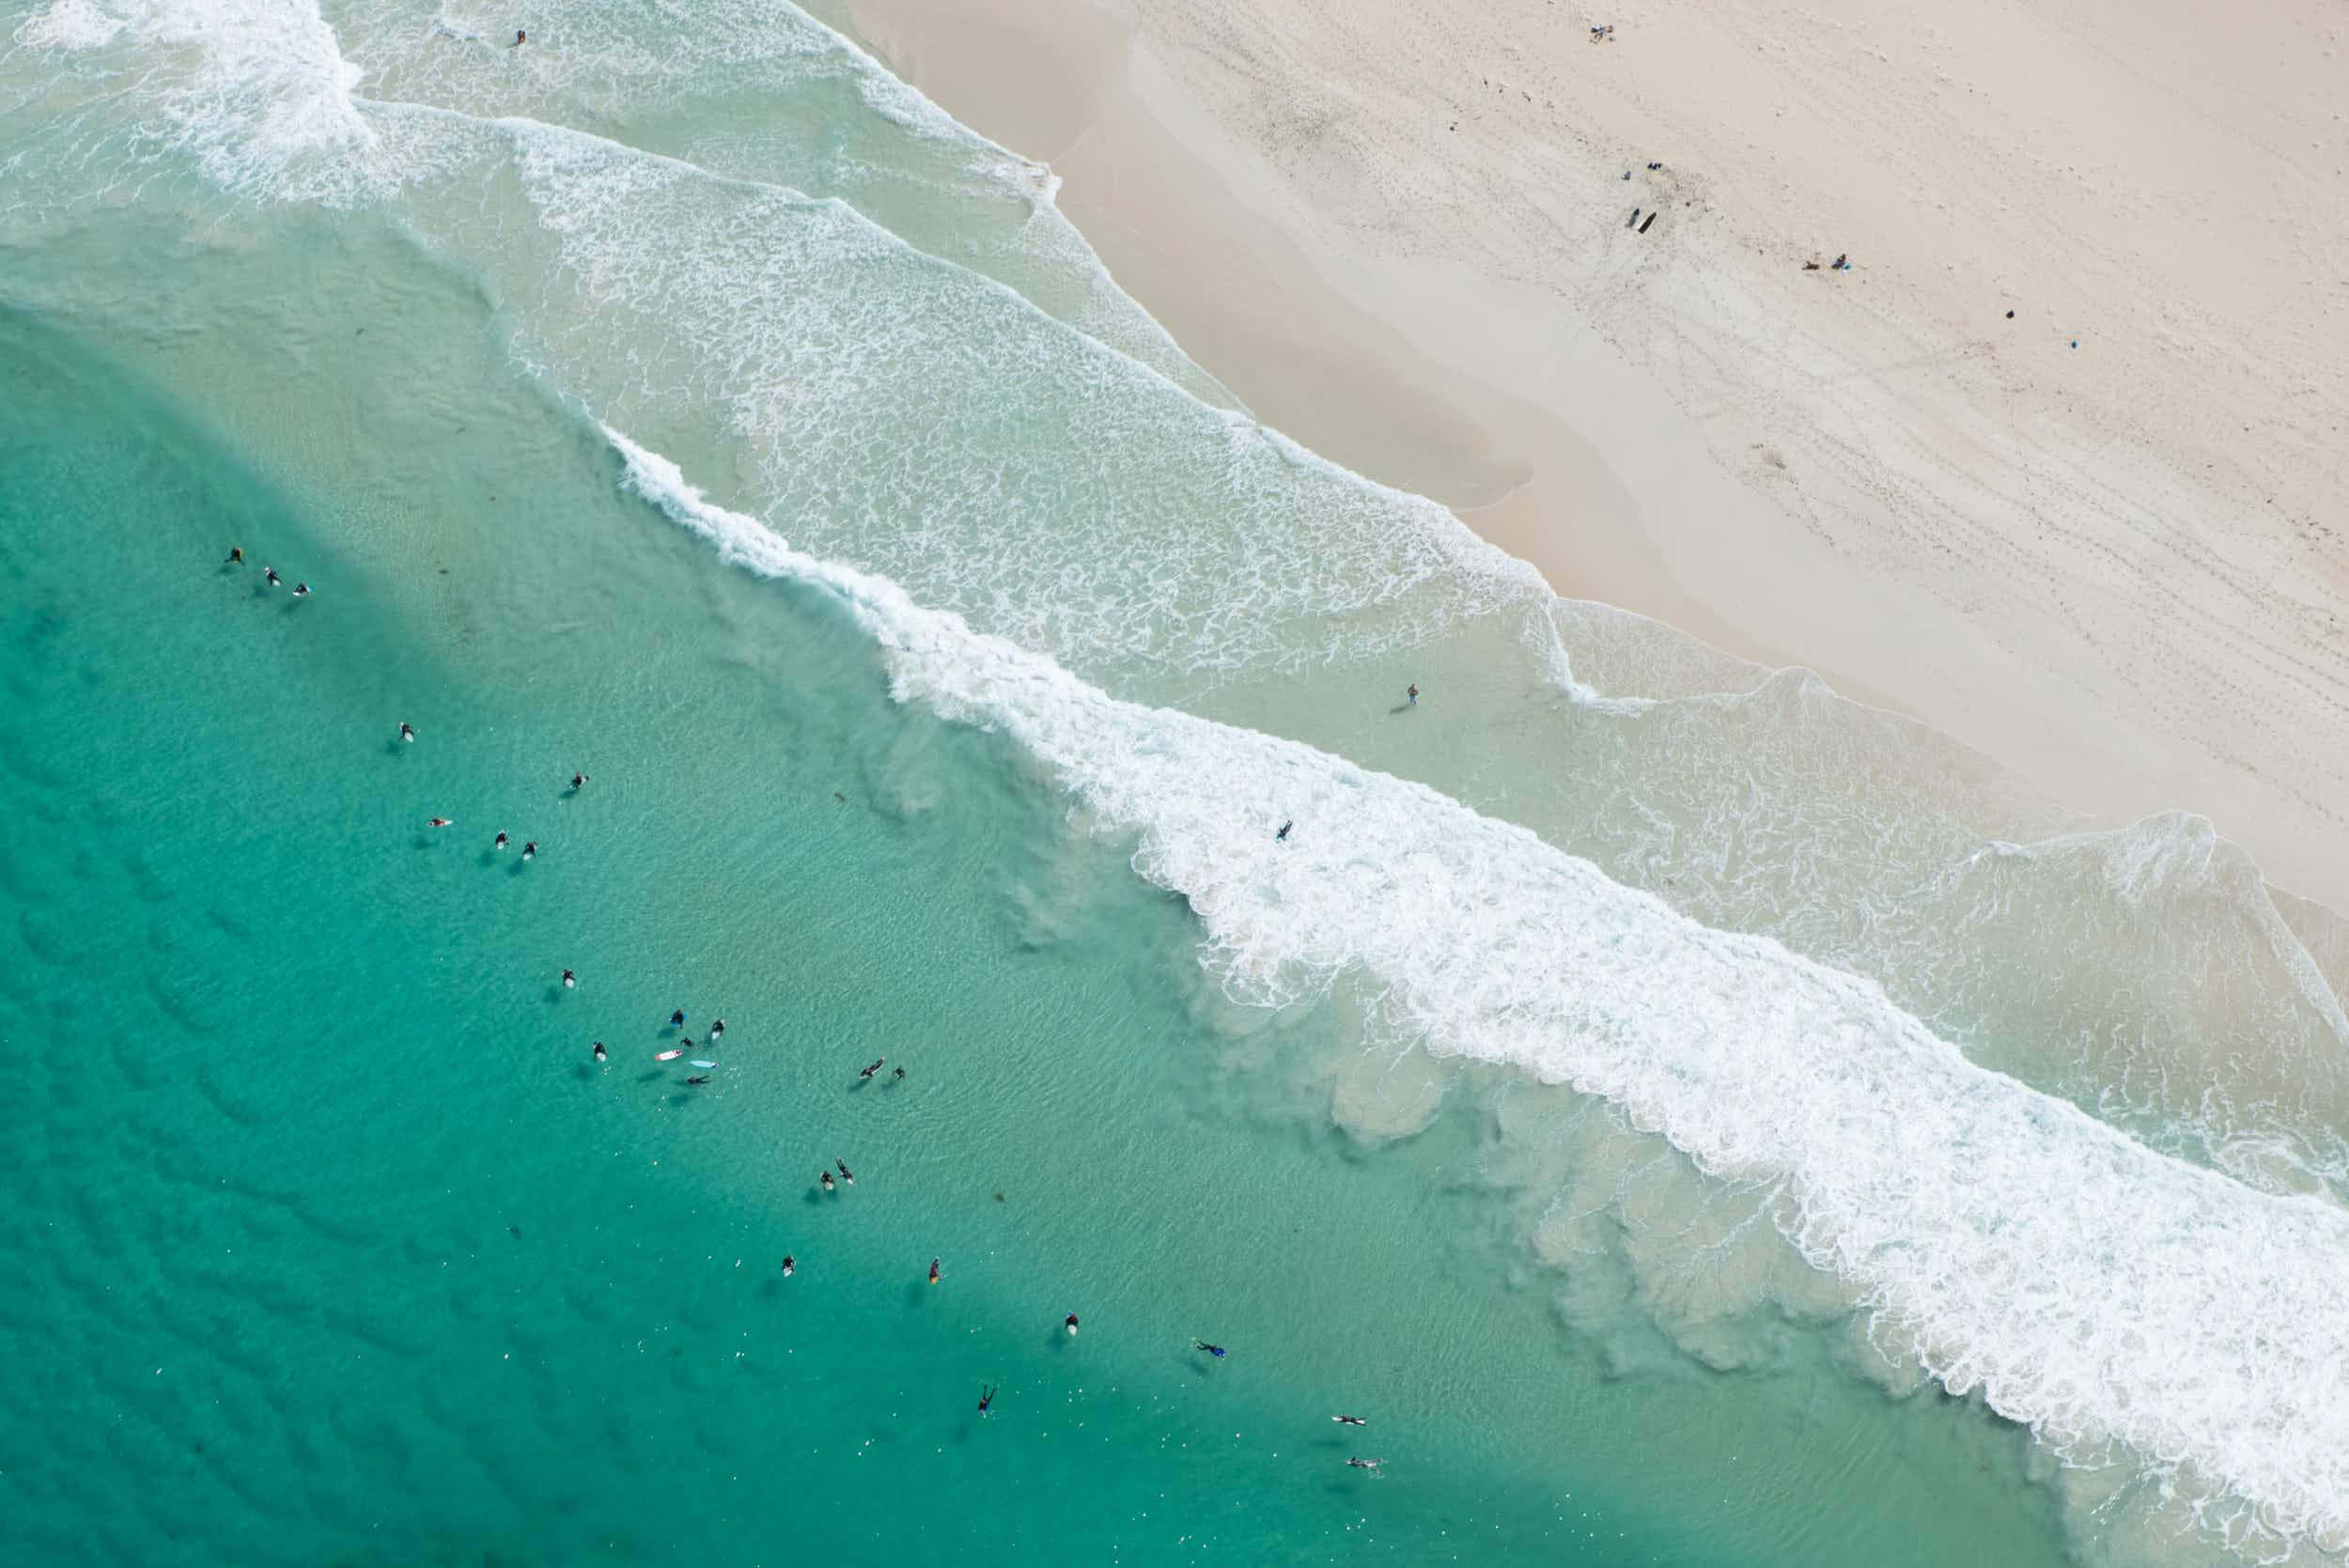 Australia is introducing shark-monitoring drones ahead of this summer's surfing season